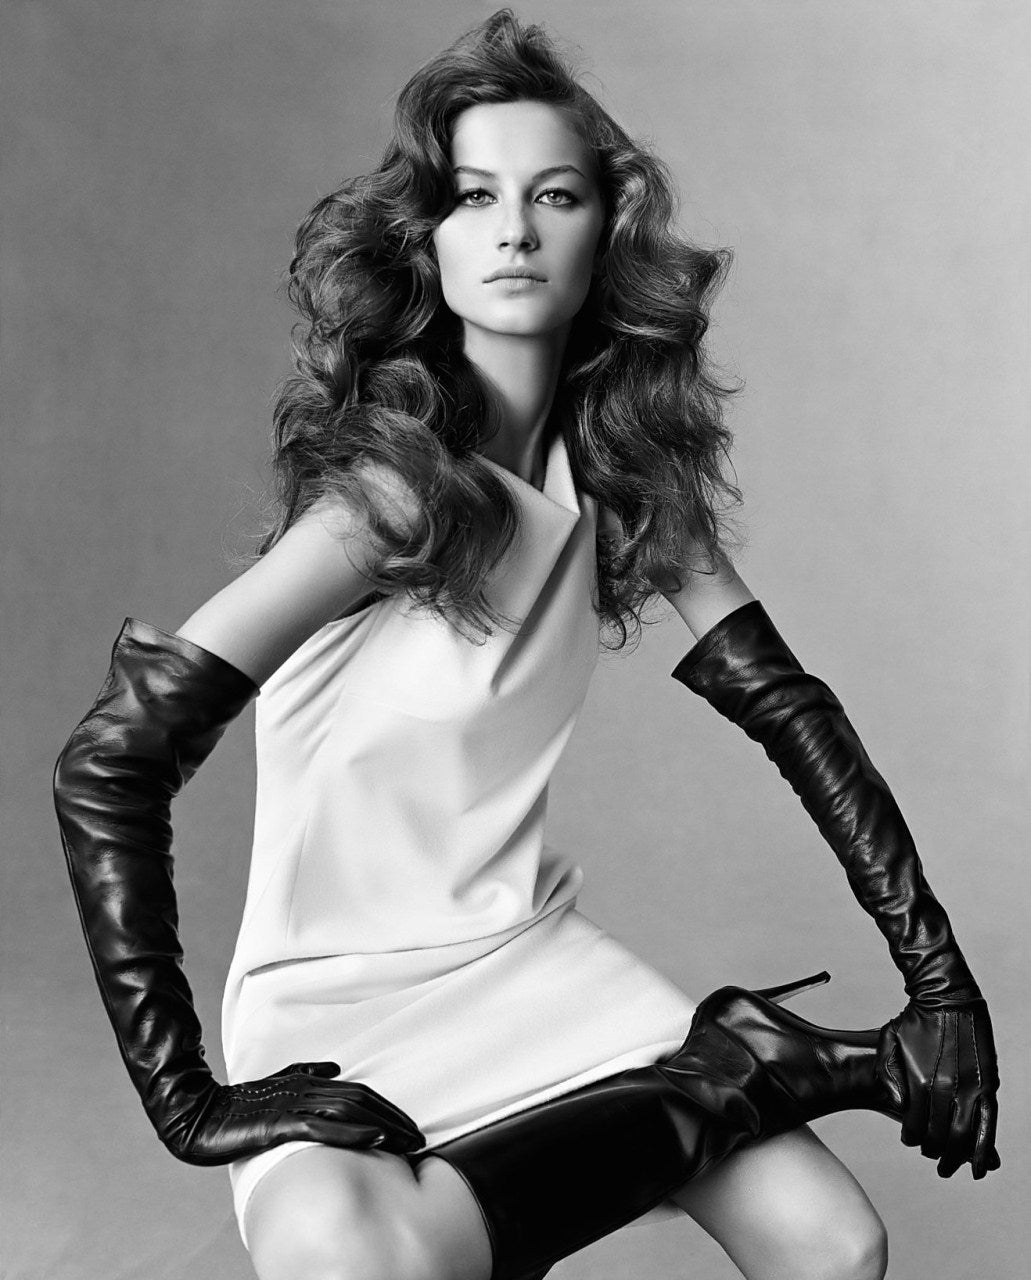 Gisele Bündchen wearing Ines Gloves for Vogue Italy photography by Steven Meisel